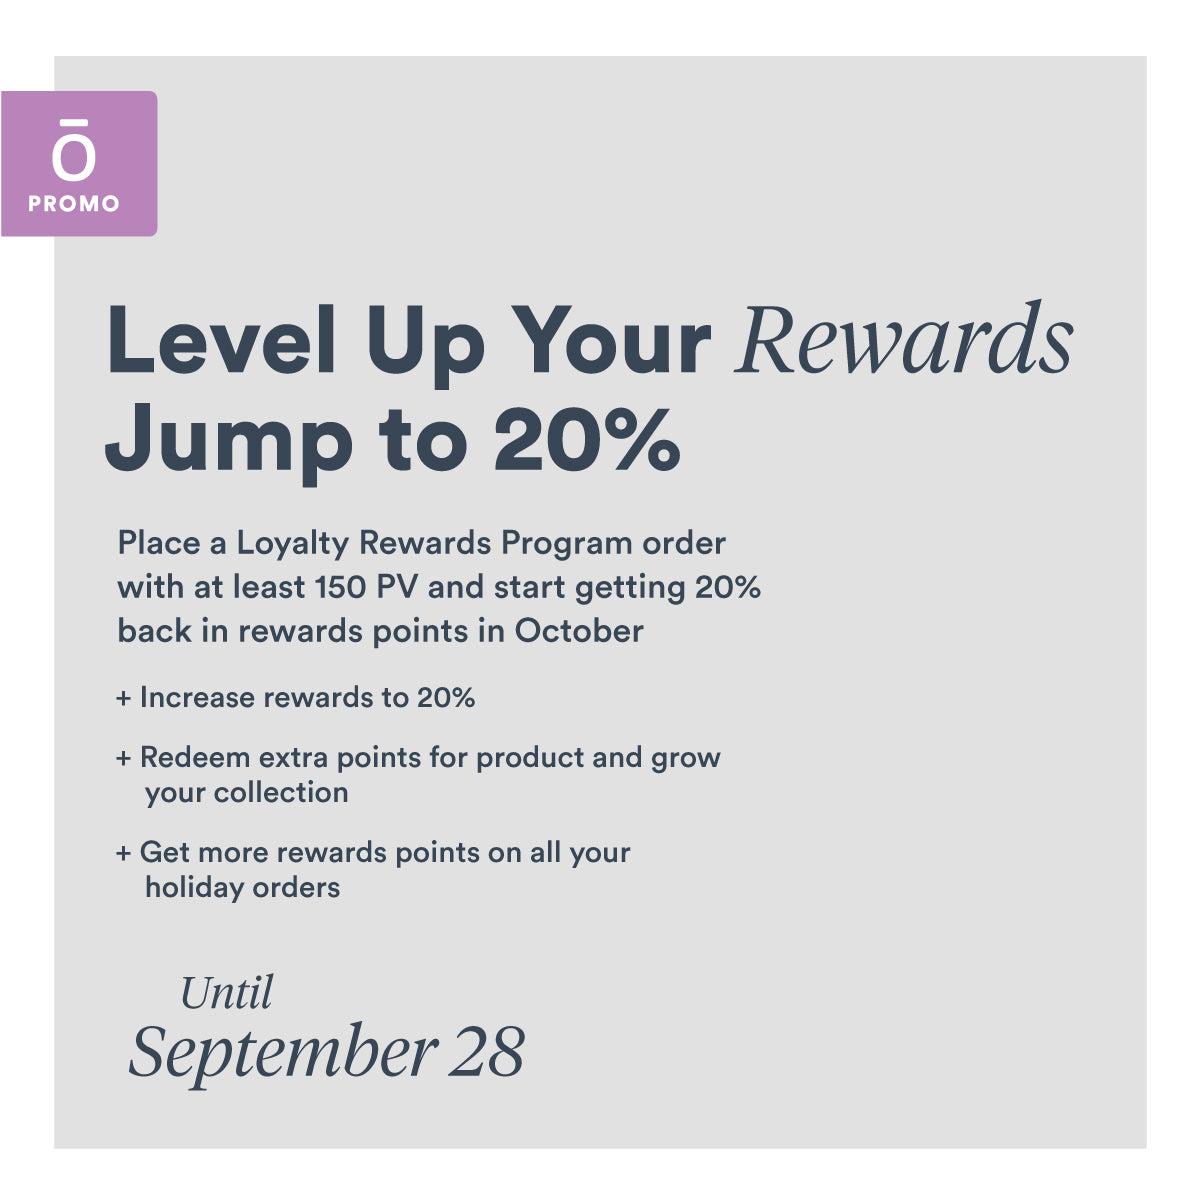 doTERRA Level Up Your Rewards Promotion